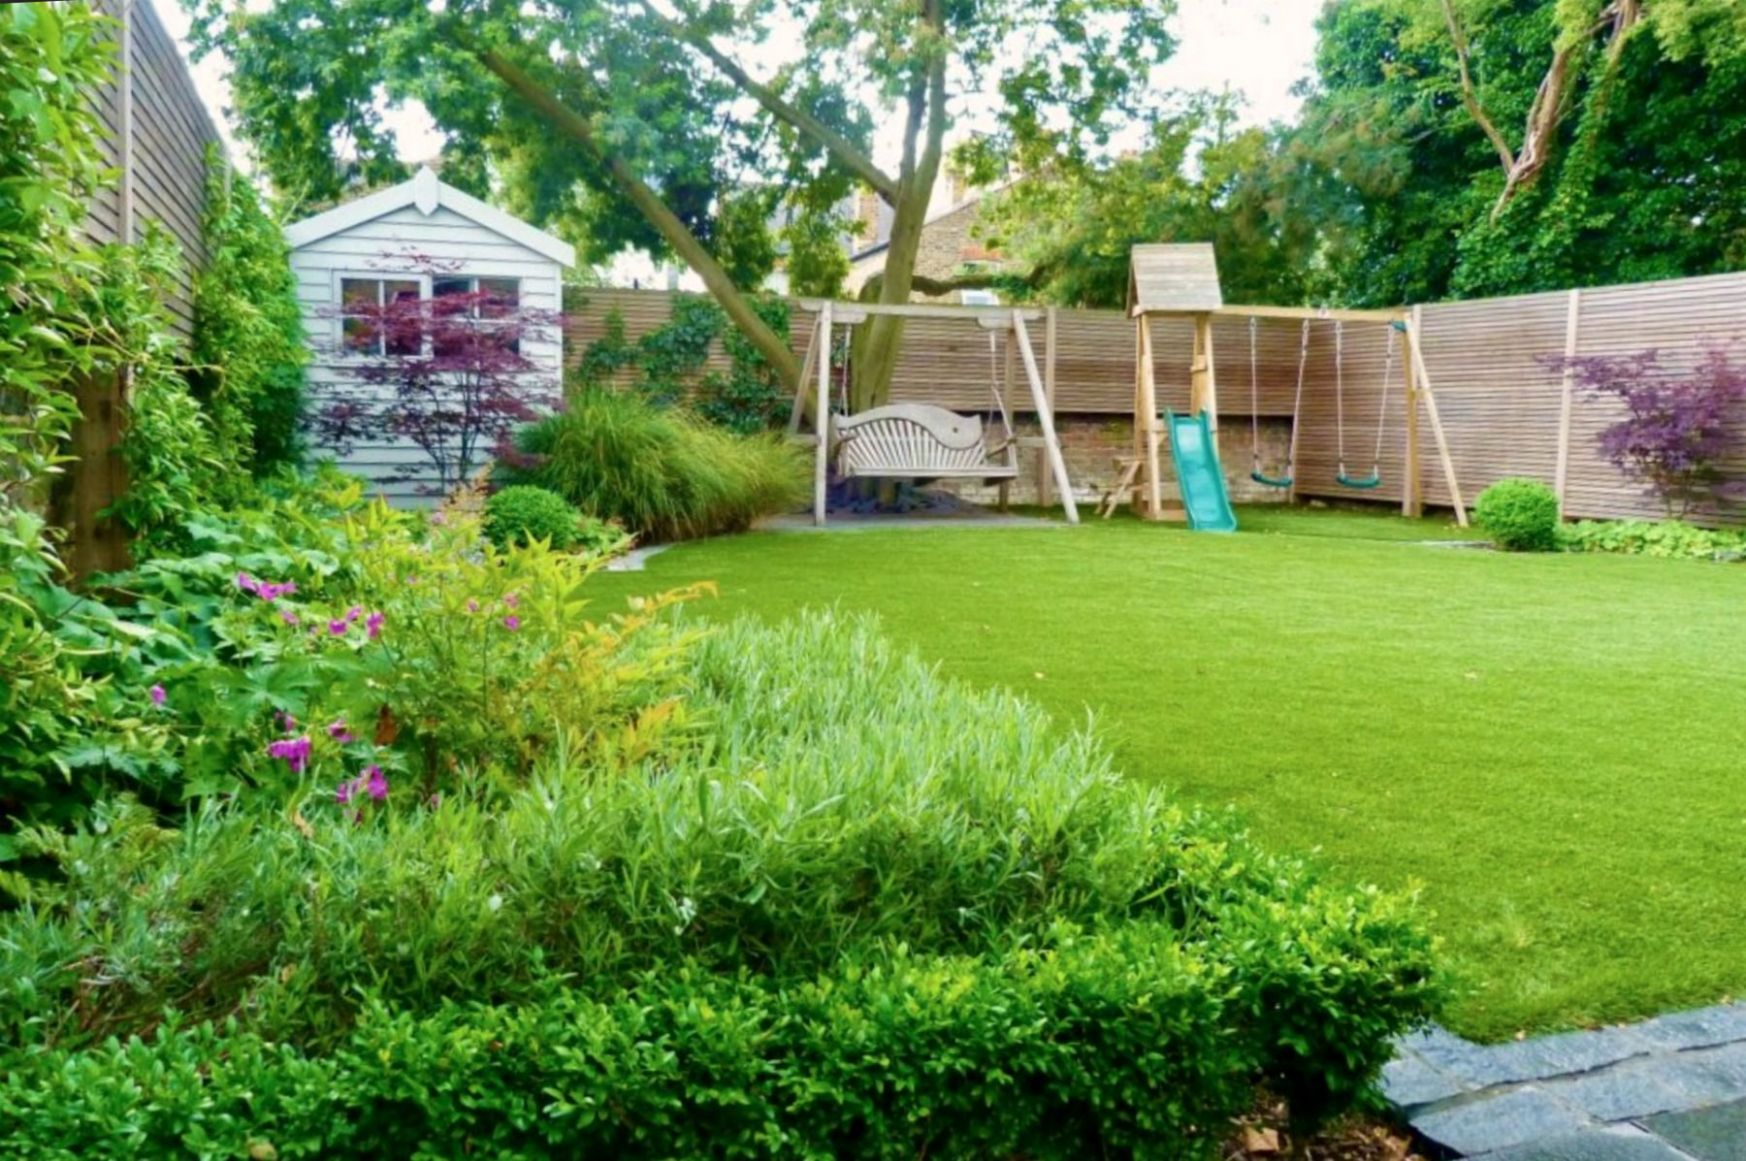 10 Fun Backyard Ideas for Kids - garden ideas kid friendly